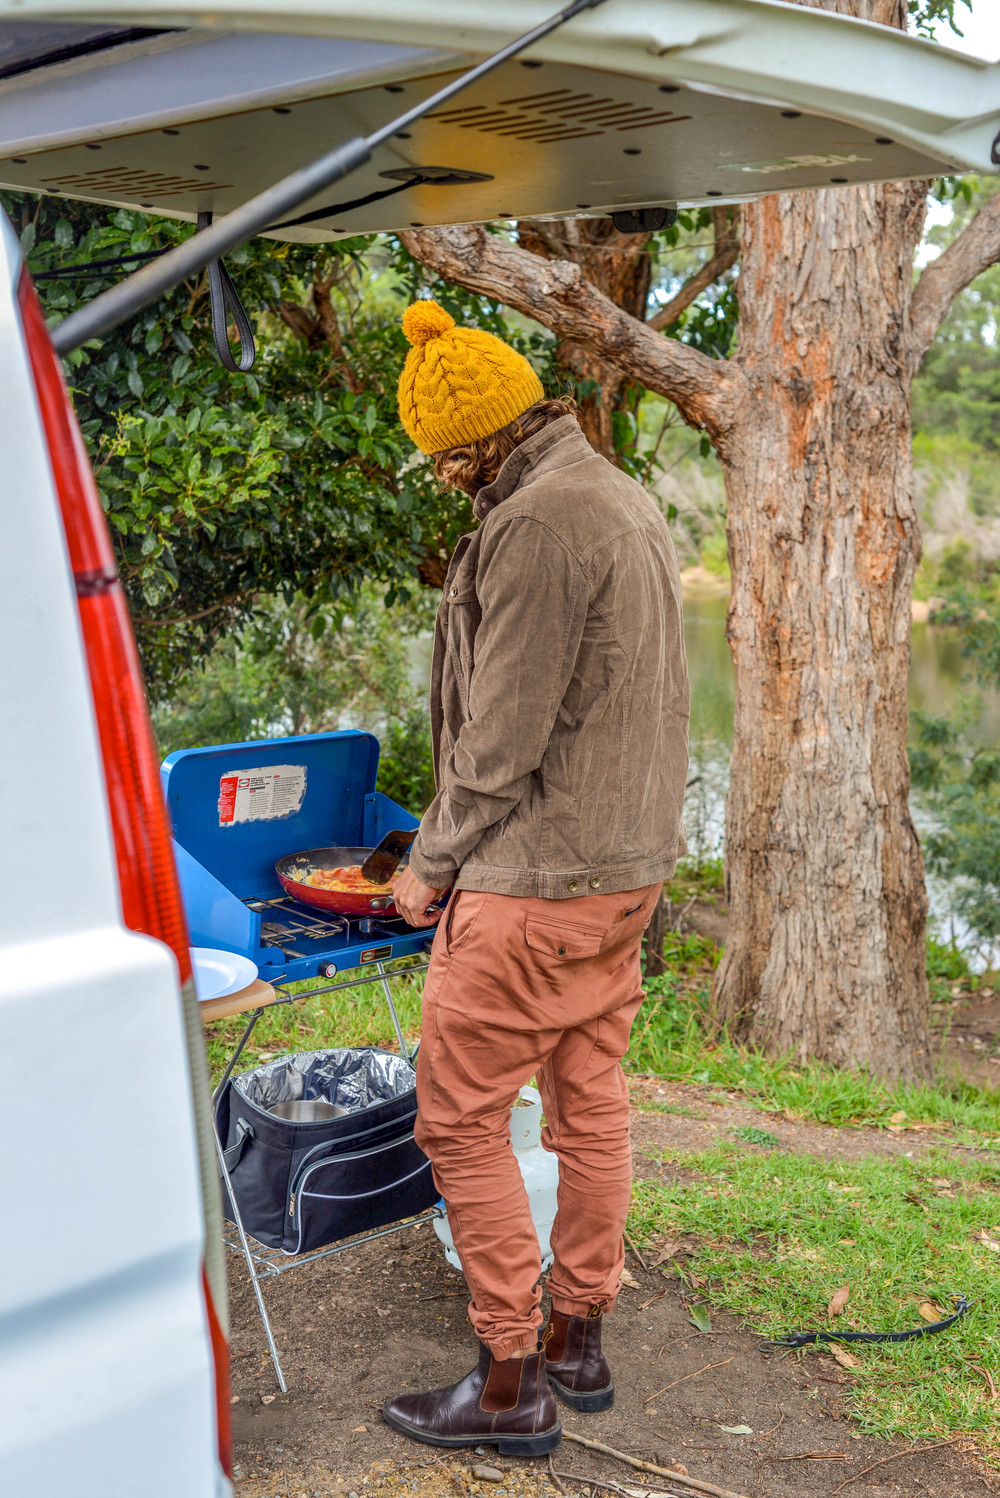 Jonny making breakfast in Snowy River, New South Wales.